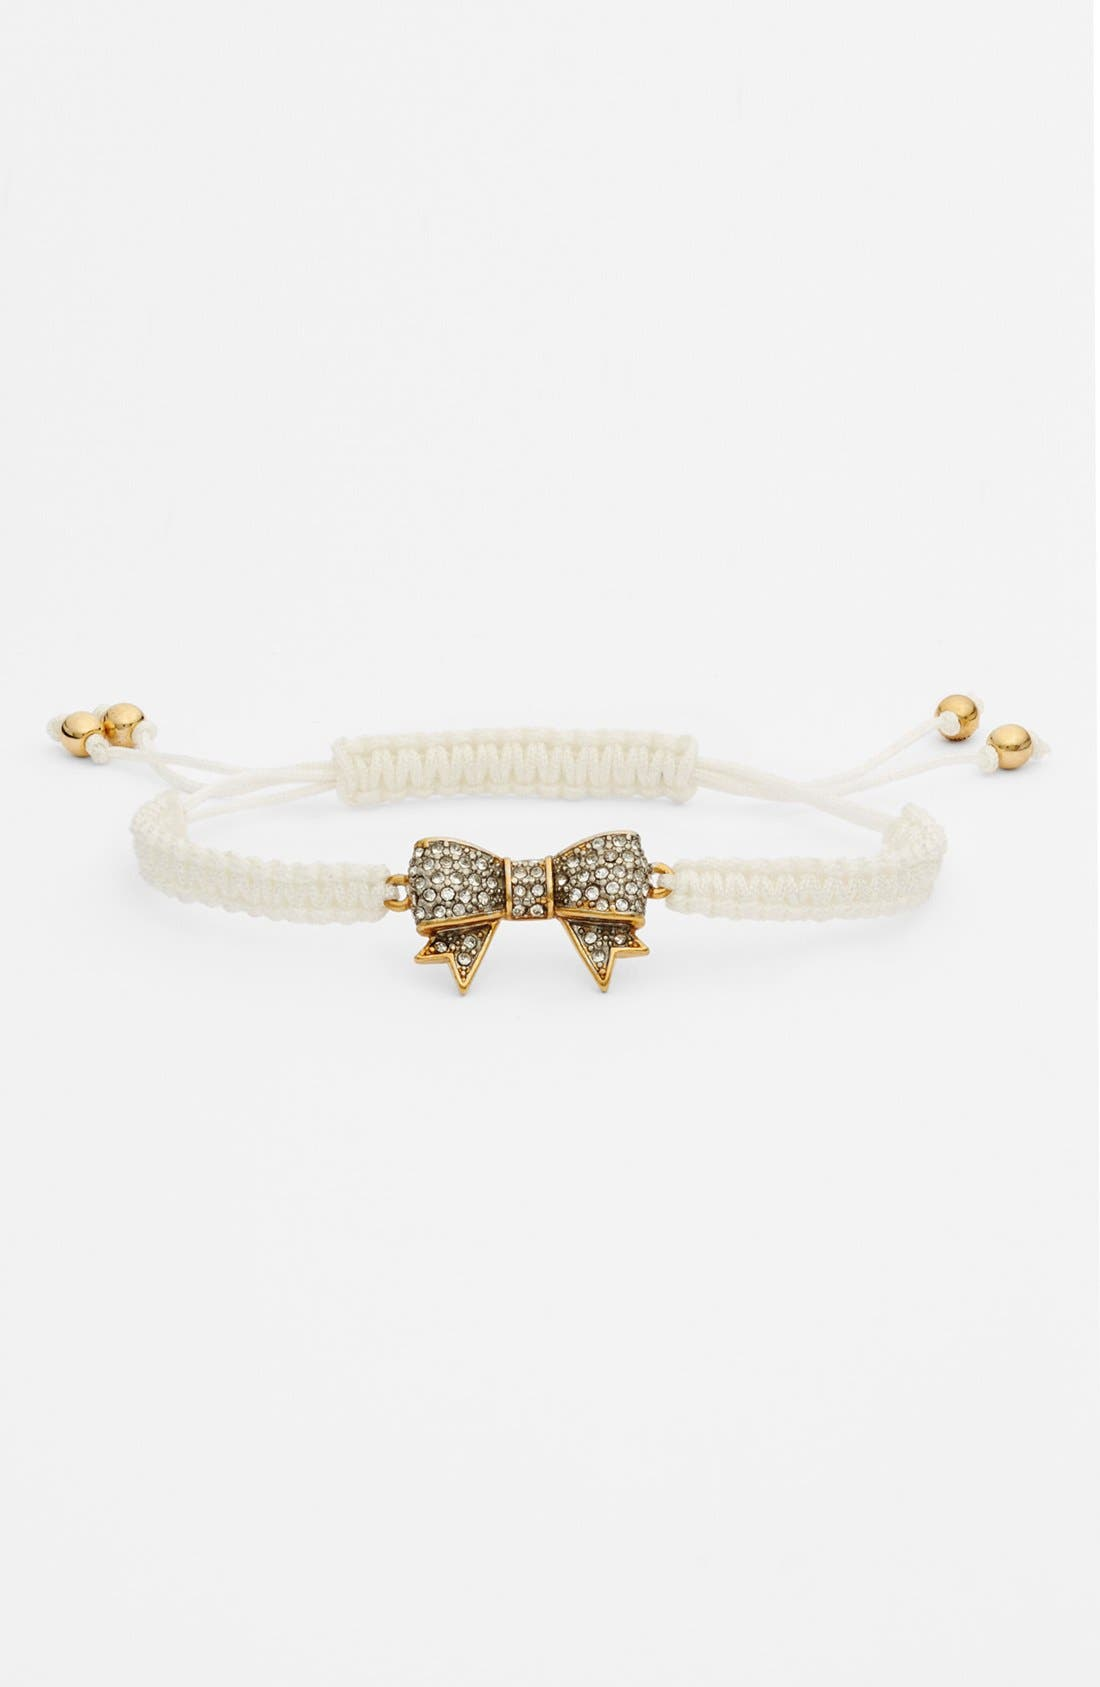 Alternate Image 1 Selected - Juicy Couture 'Jewelry Box Treasures' Pavé Bow Macramé Bracelet